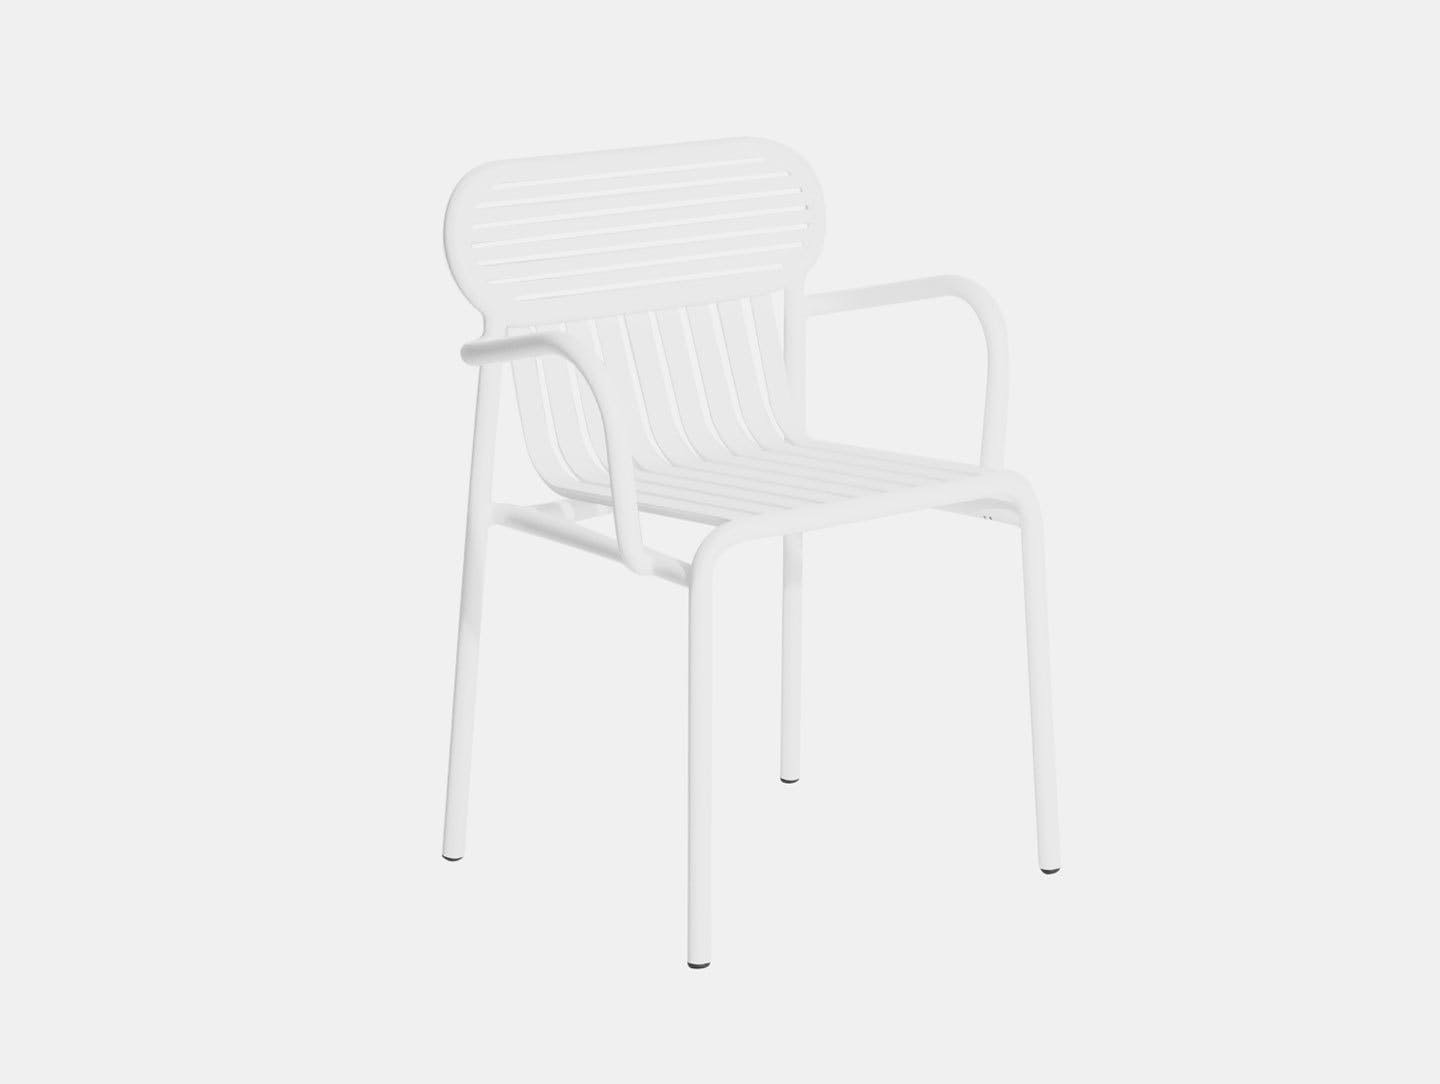 Petite Friture Week End Outdoor Armchair white Studio Brichet Ziegler